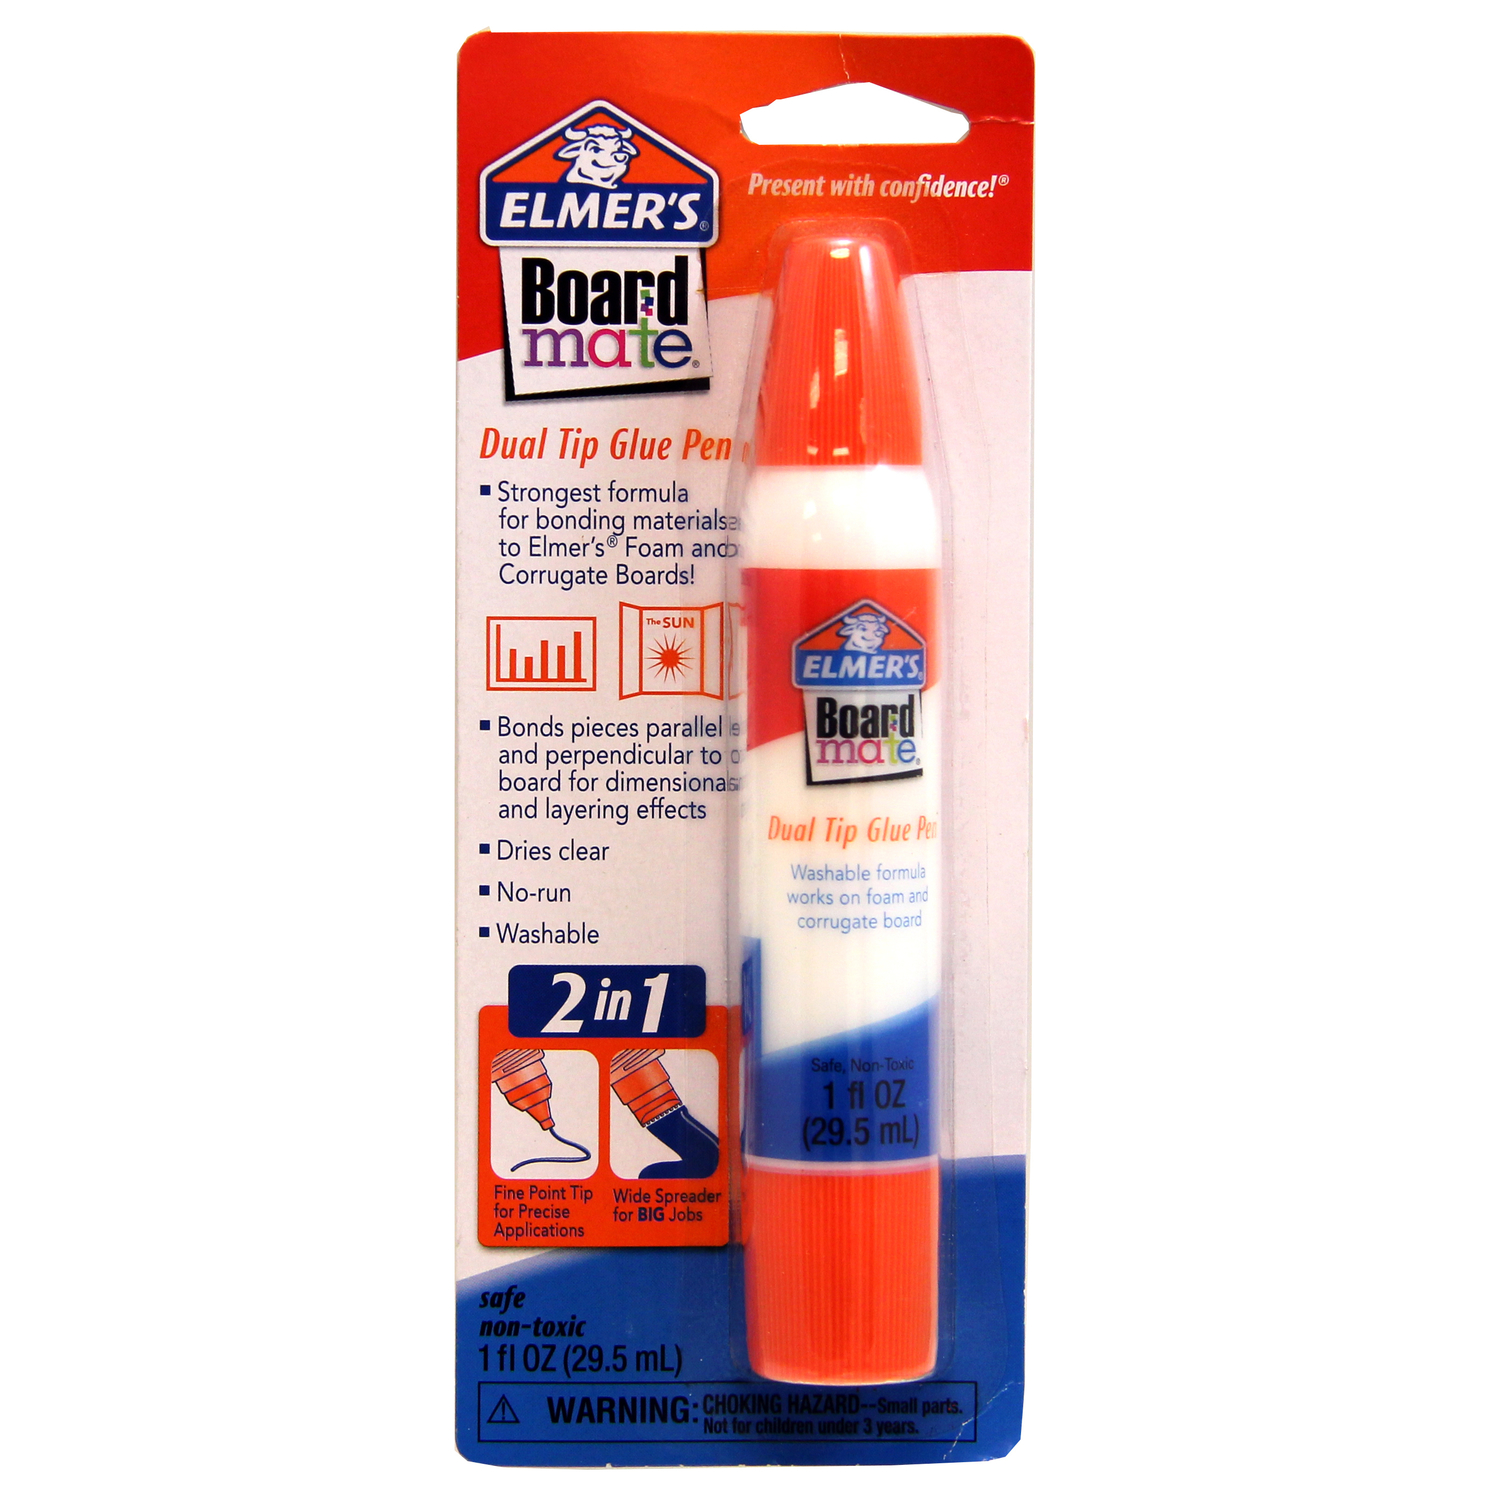 Elmer's  BoardMate  Medium Strength  Polyvinyl acetate homopolymer  Dual Tip Glue Pen  1 oz.